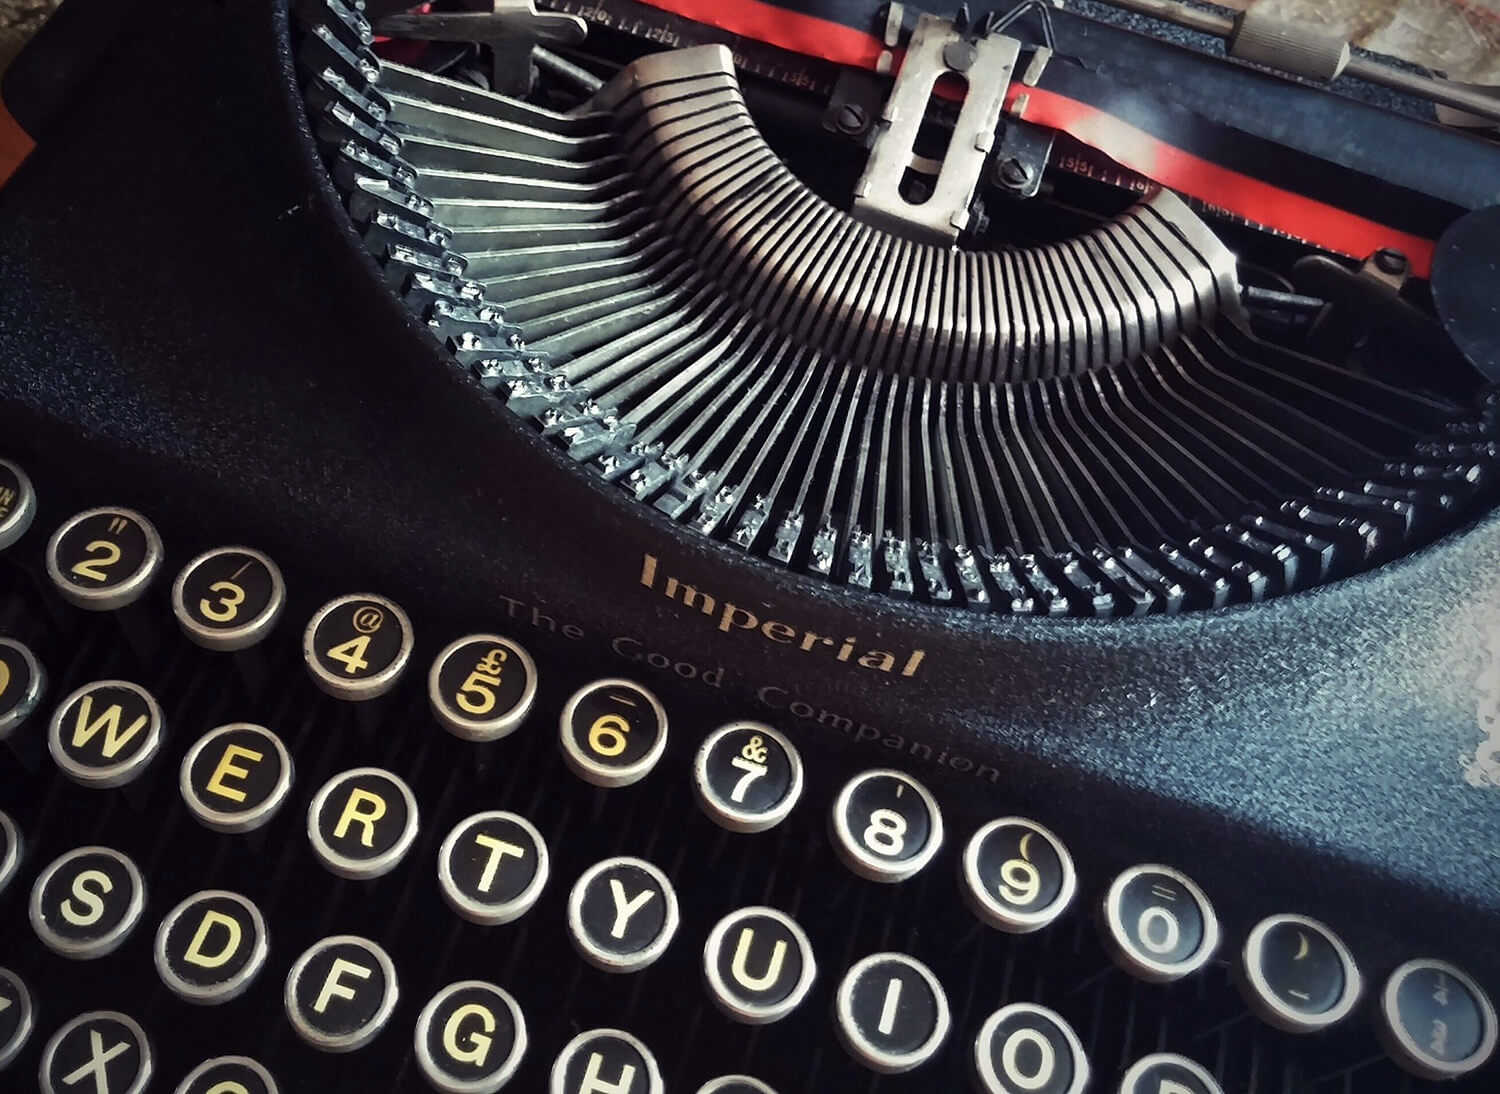 We won't reply using our typewriter ... we promise.